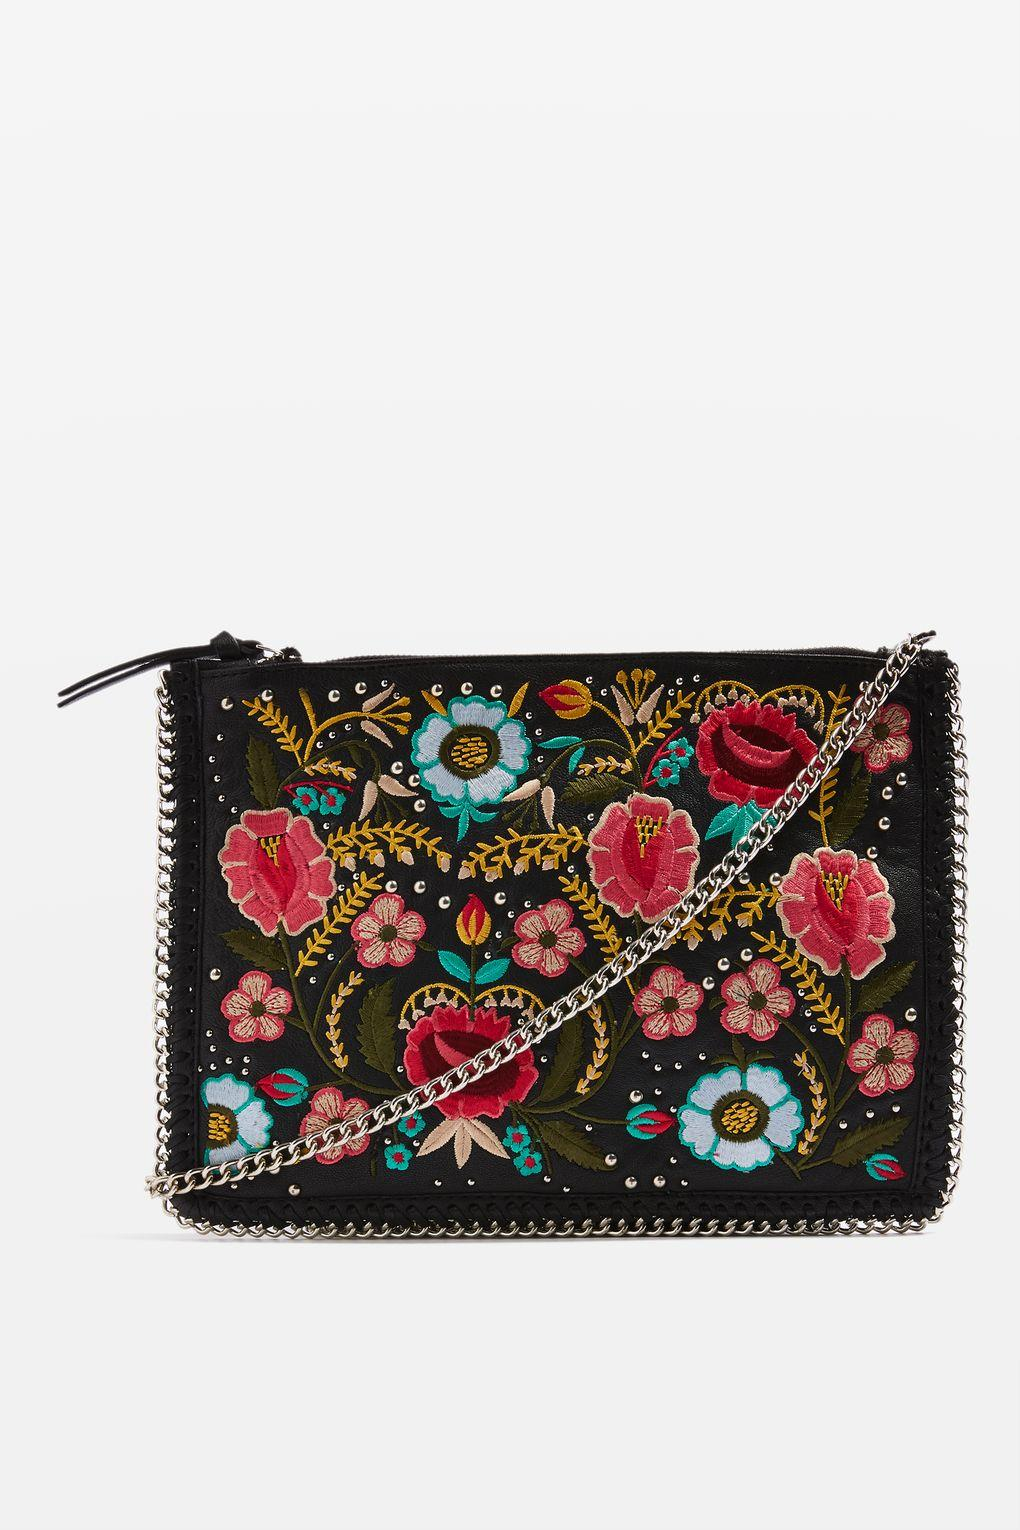 Lyst - Topshop Ava Floral Embroidered Cross Body Bag In Black